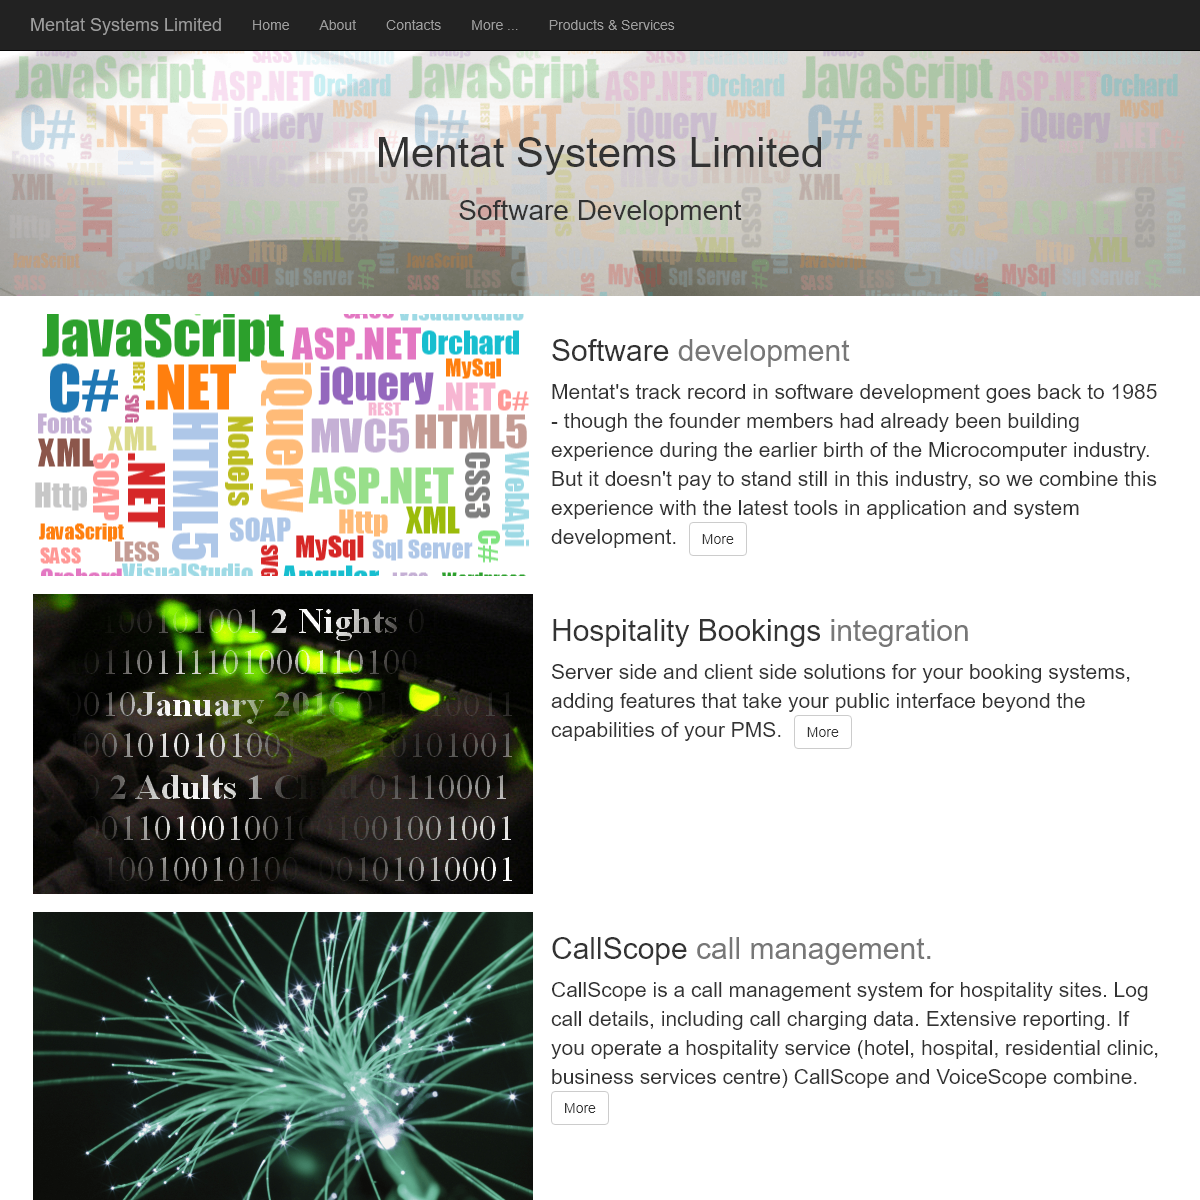 Software Development - Mentat Systems Limited